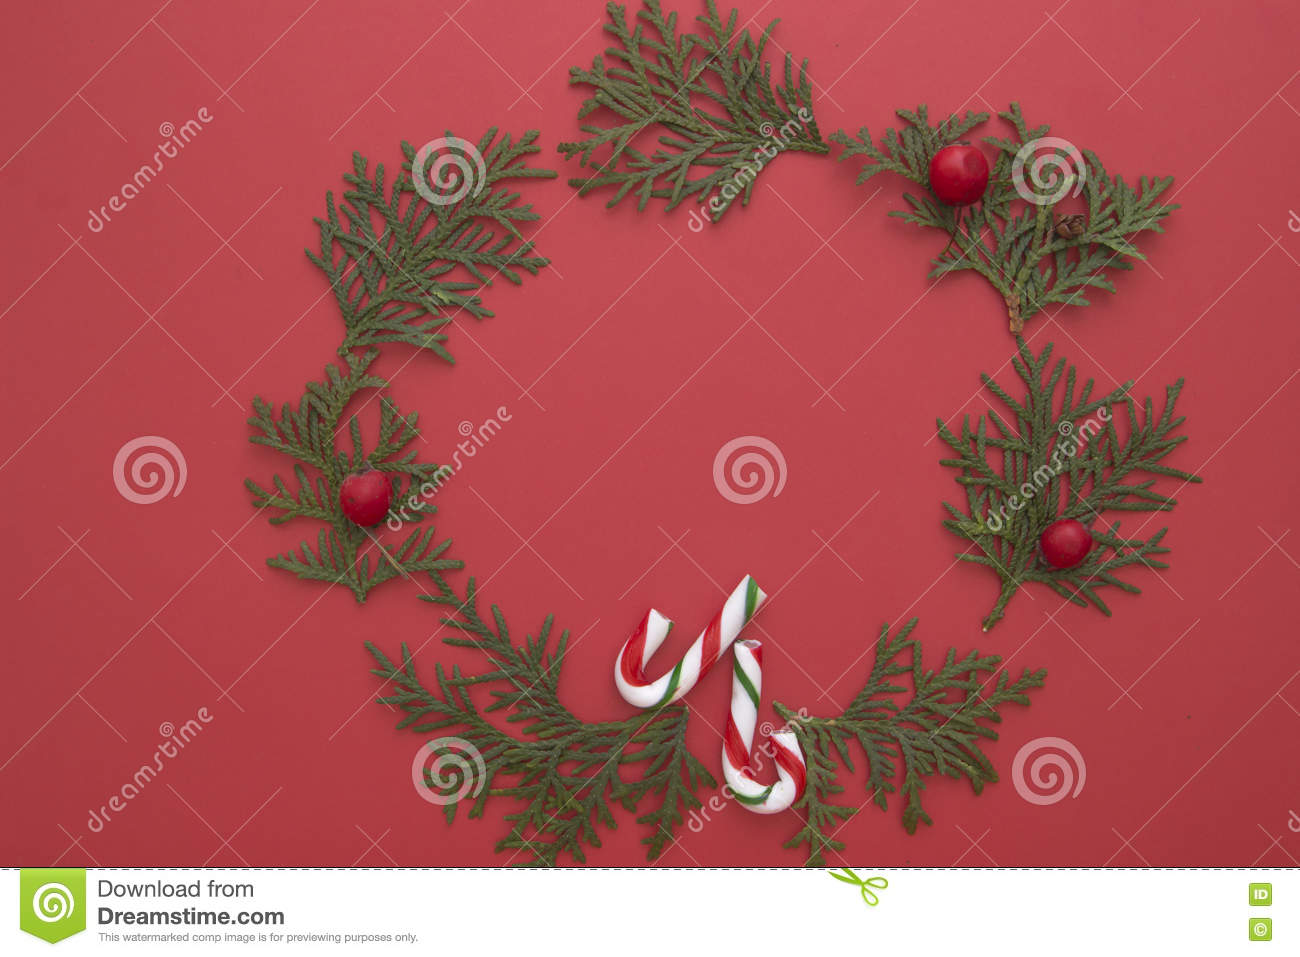 Christmas composition made of green thuja twigs and candy canes on red background. Top view, flat lay. Copy space for